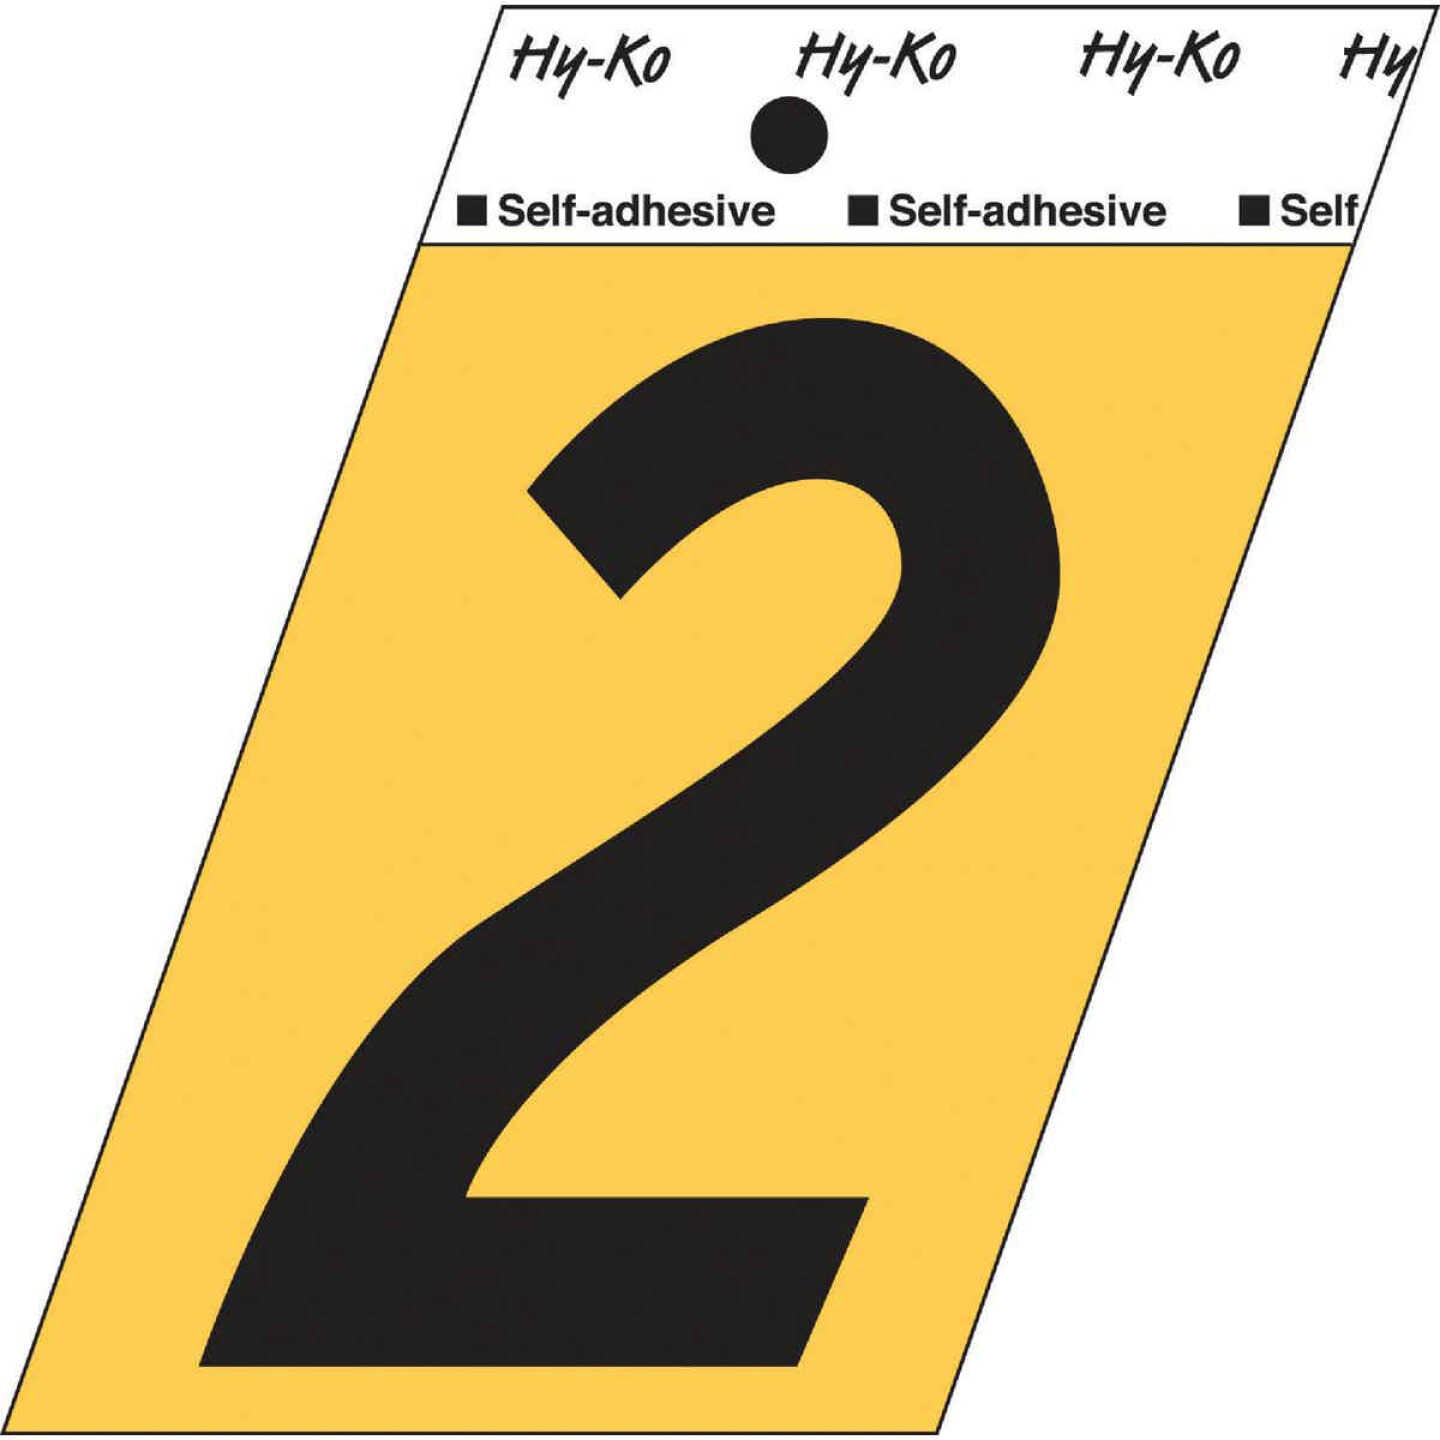 Hy-Ko Aluminum 3-1/2 In. Non-Reflective Adhesive Number Two Image 1